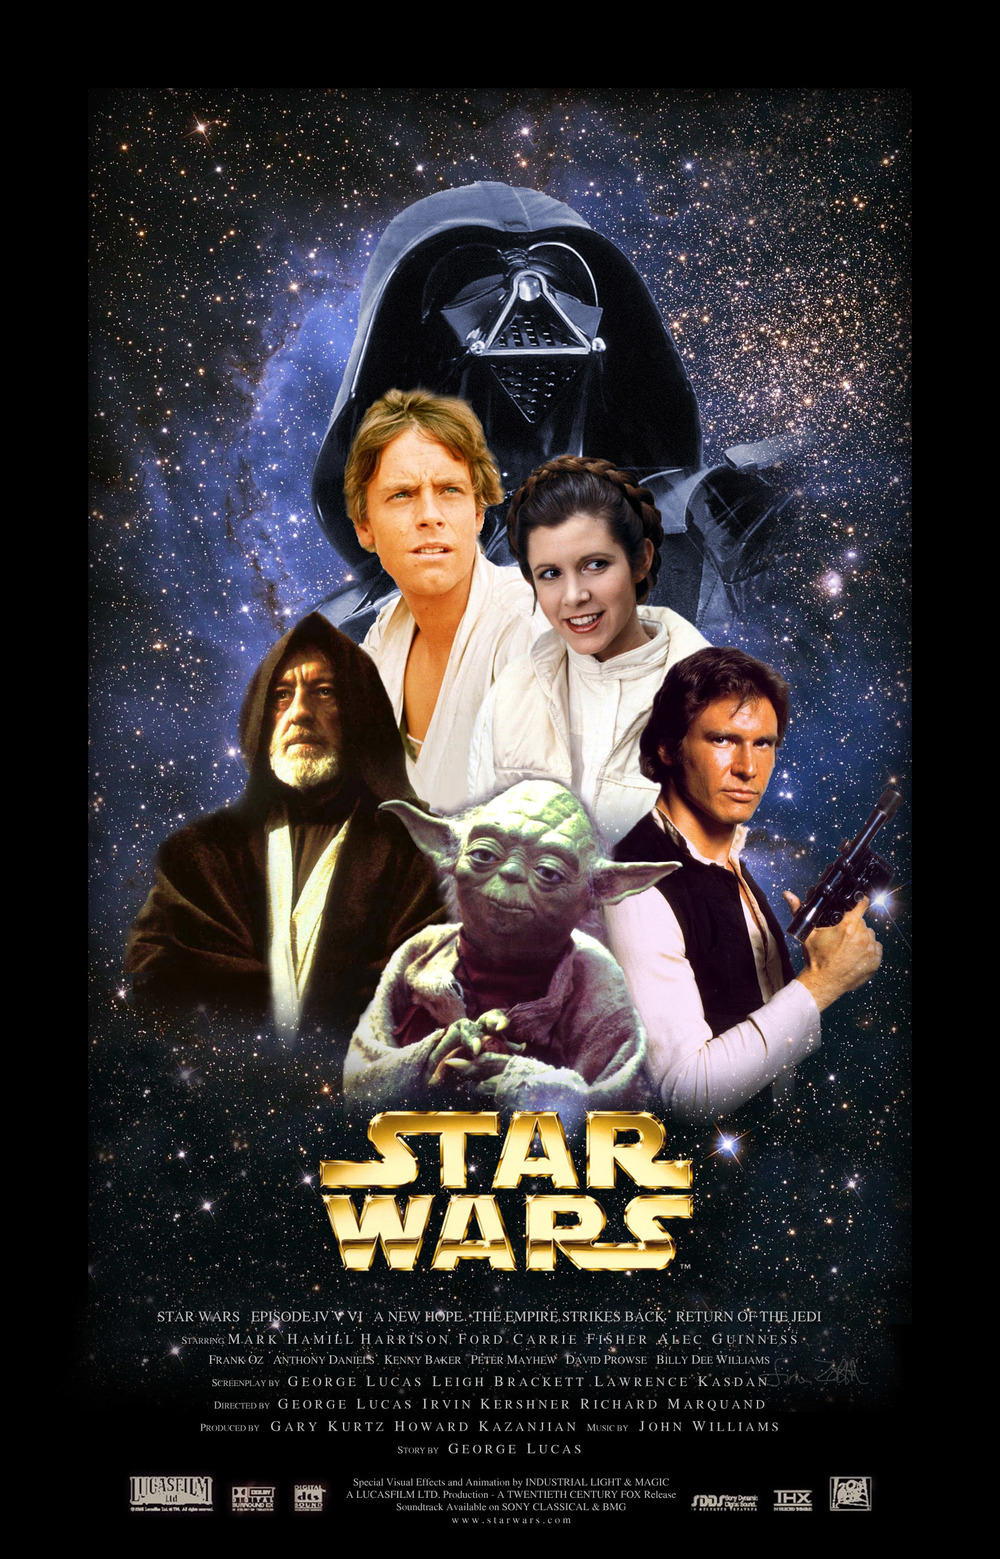 The Star Wars Movies